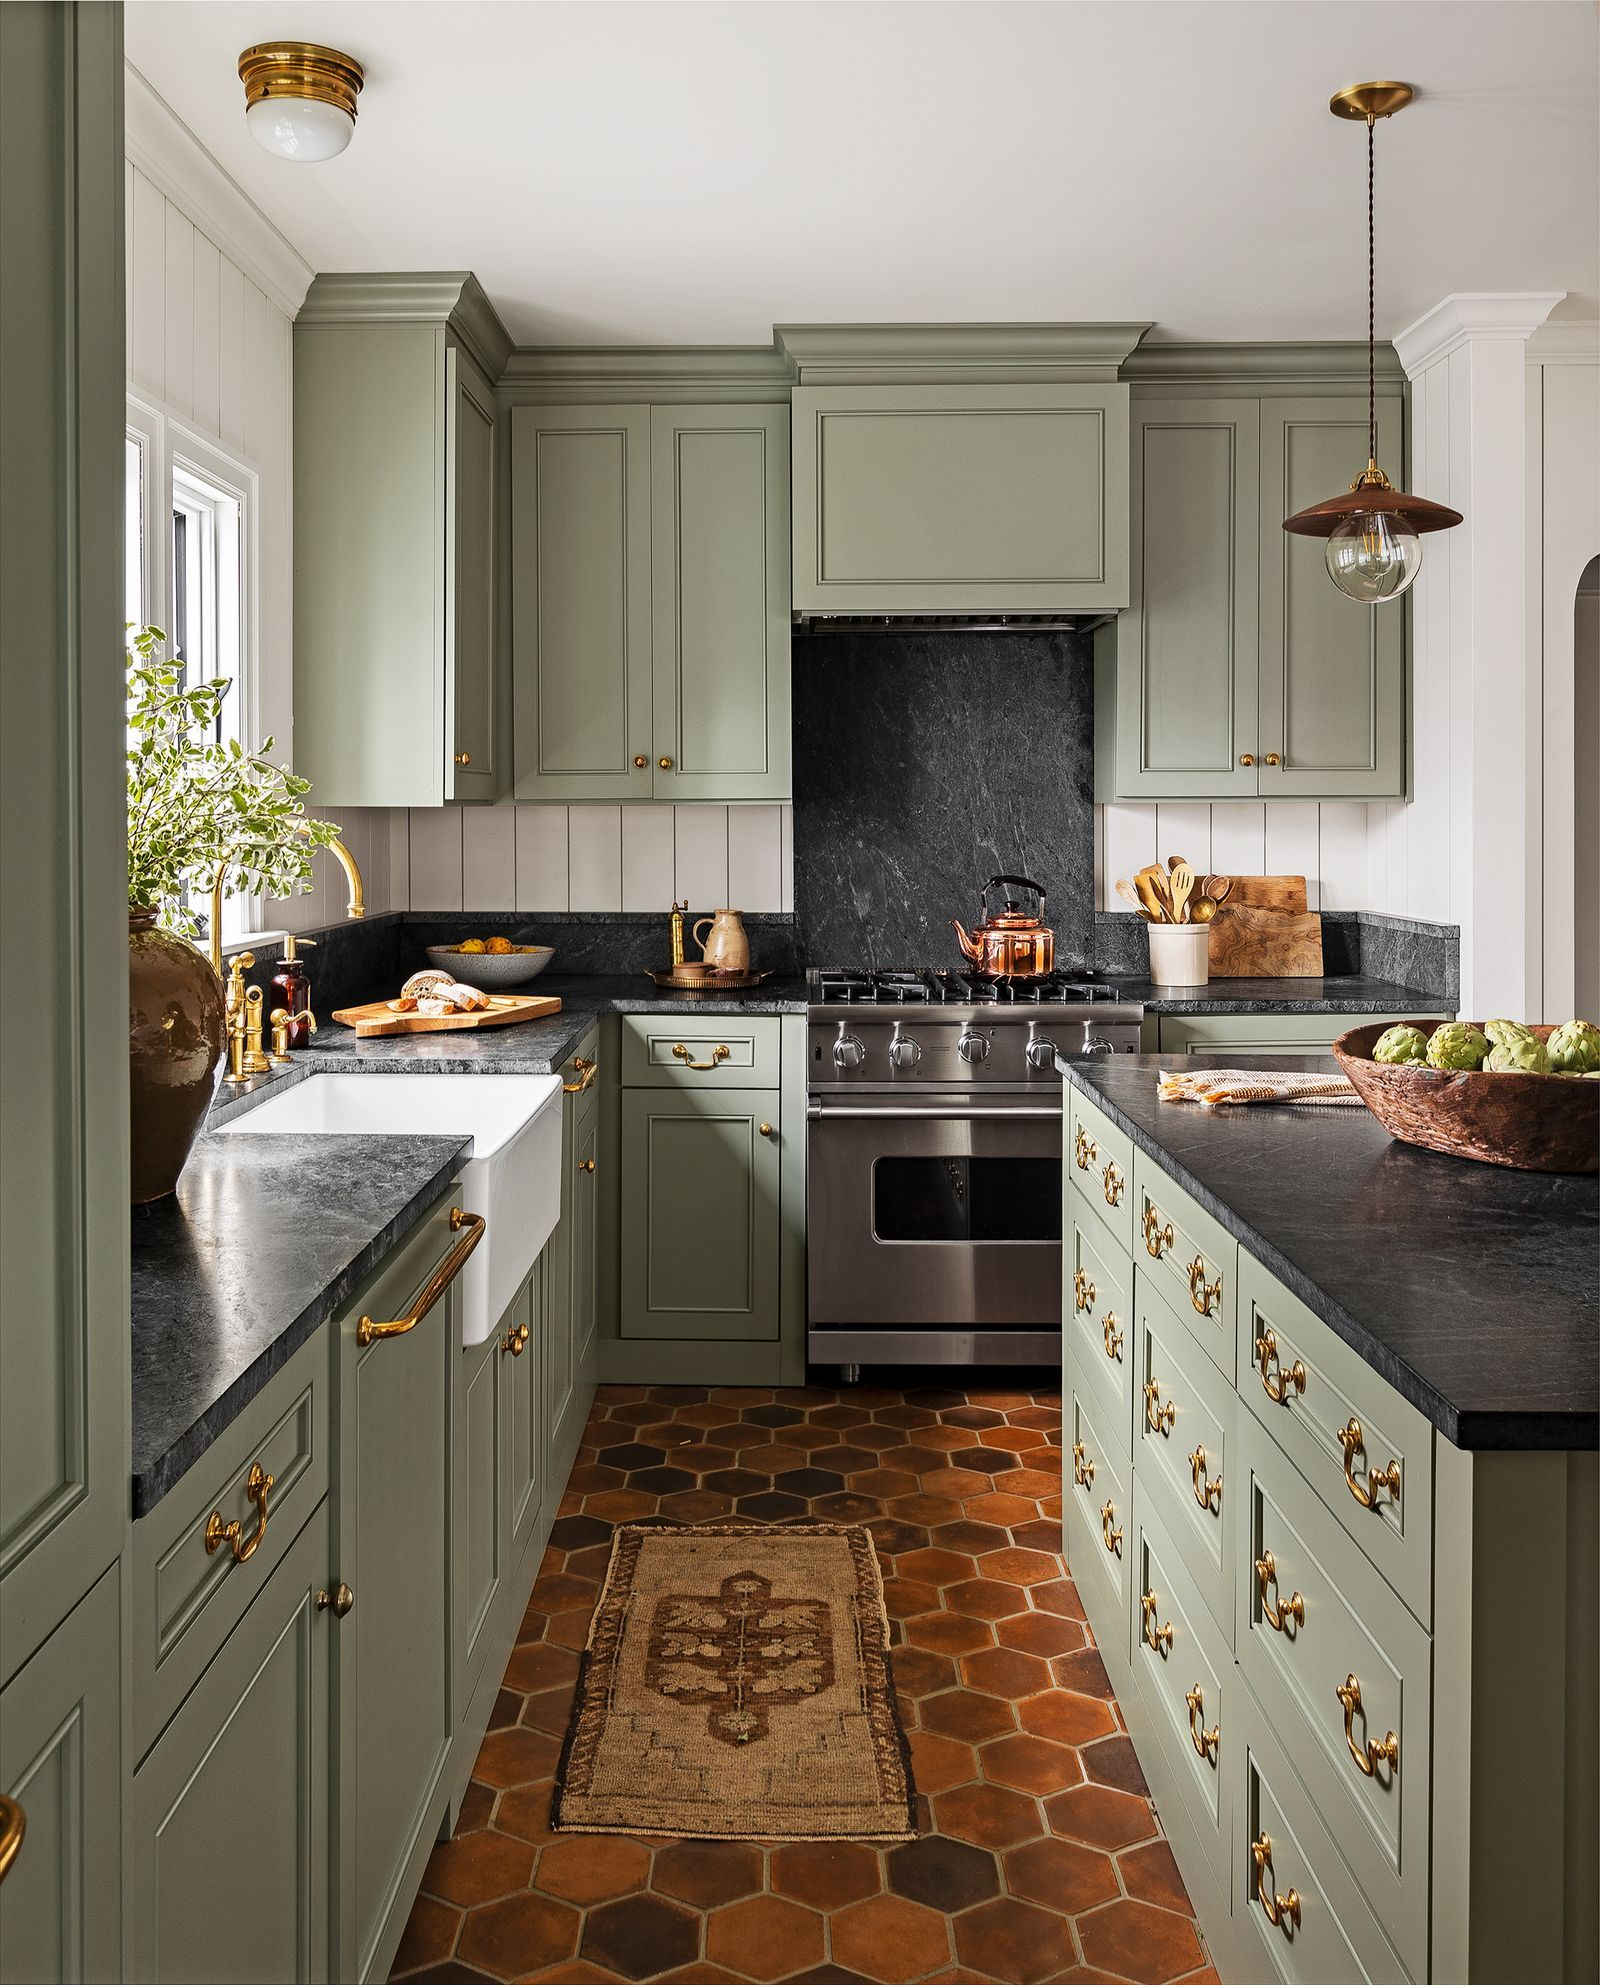 Go Green With These Beautiful Kitchen Cabinet Colors In 2020 Beautiful Kitchen Cabinets Green Kitchen Cabinets Green Kitchen Walls